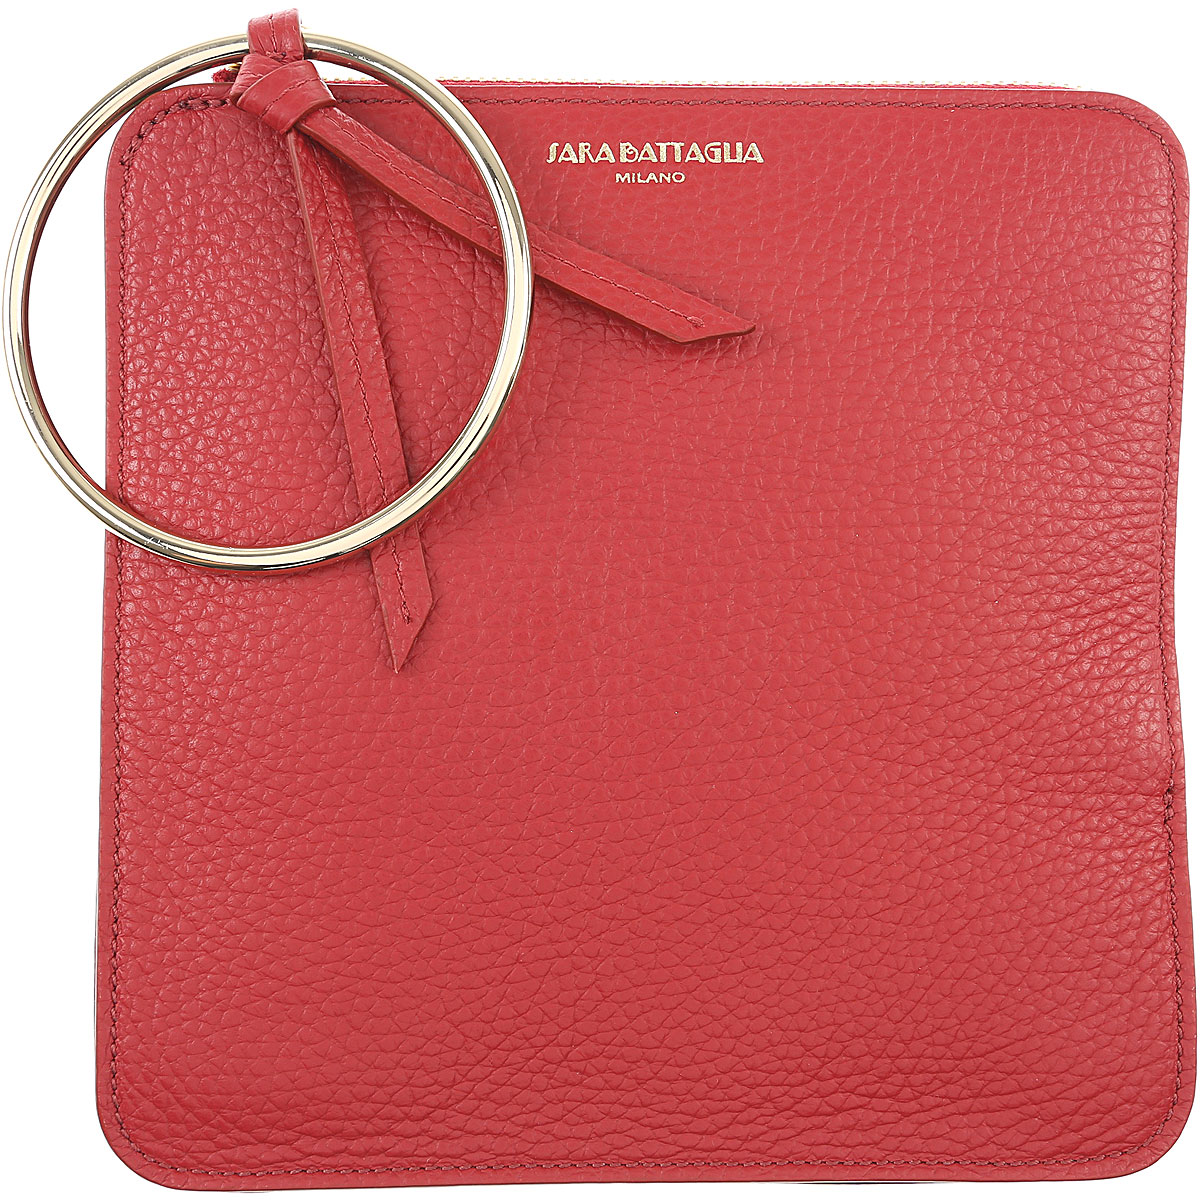 Image of Sara Battaglia Women\'s Pouch, Red, Leather, 2017